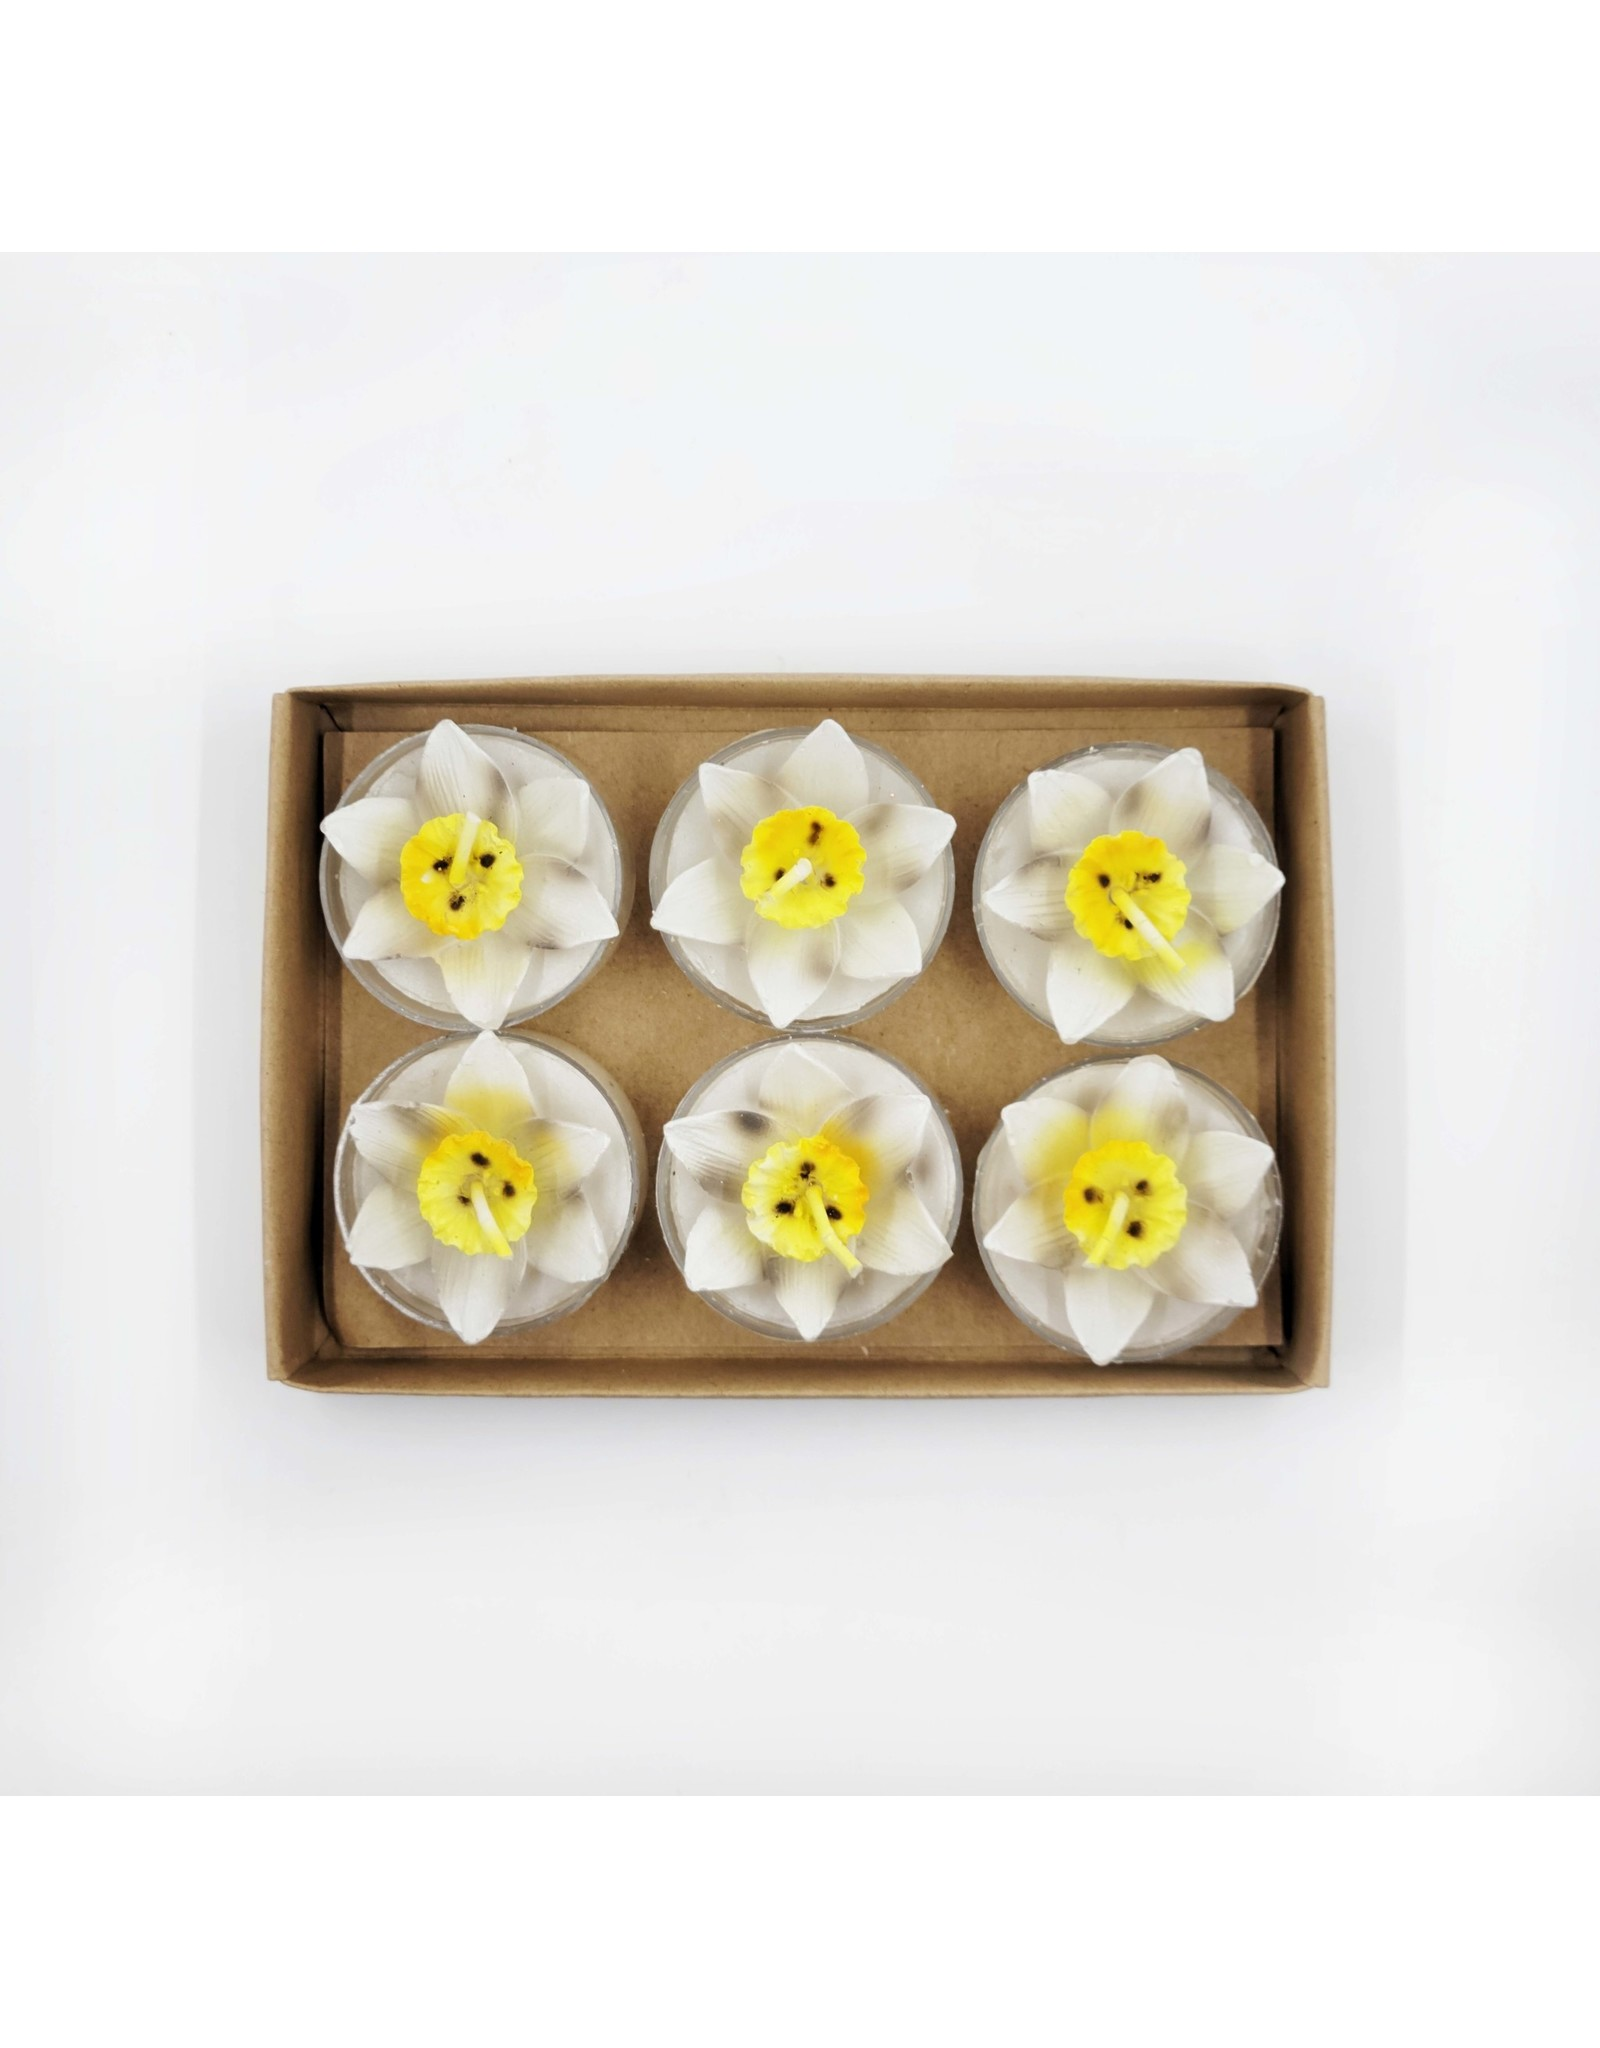 One Hundred 80 Degrees Decorative Tealight Candles - Pack of 6